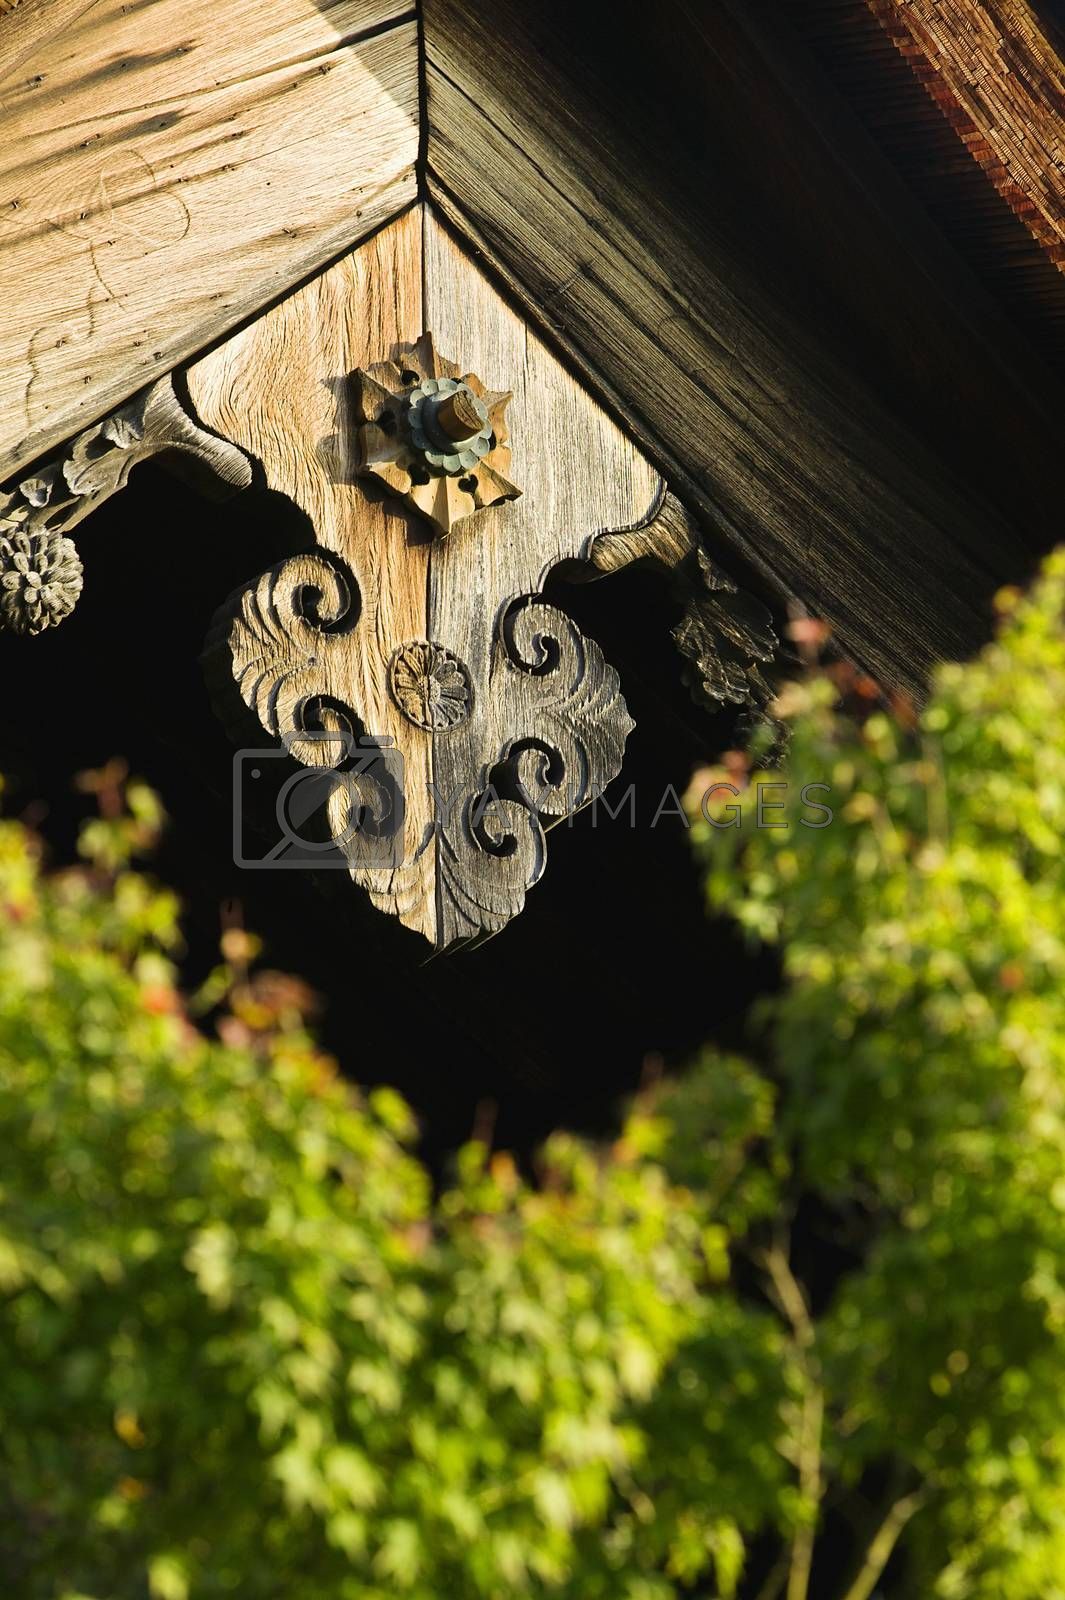 Japan Kyoto Tenryuji Temple architectural detail close-up by moodboard